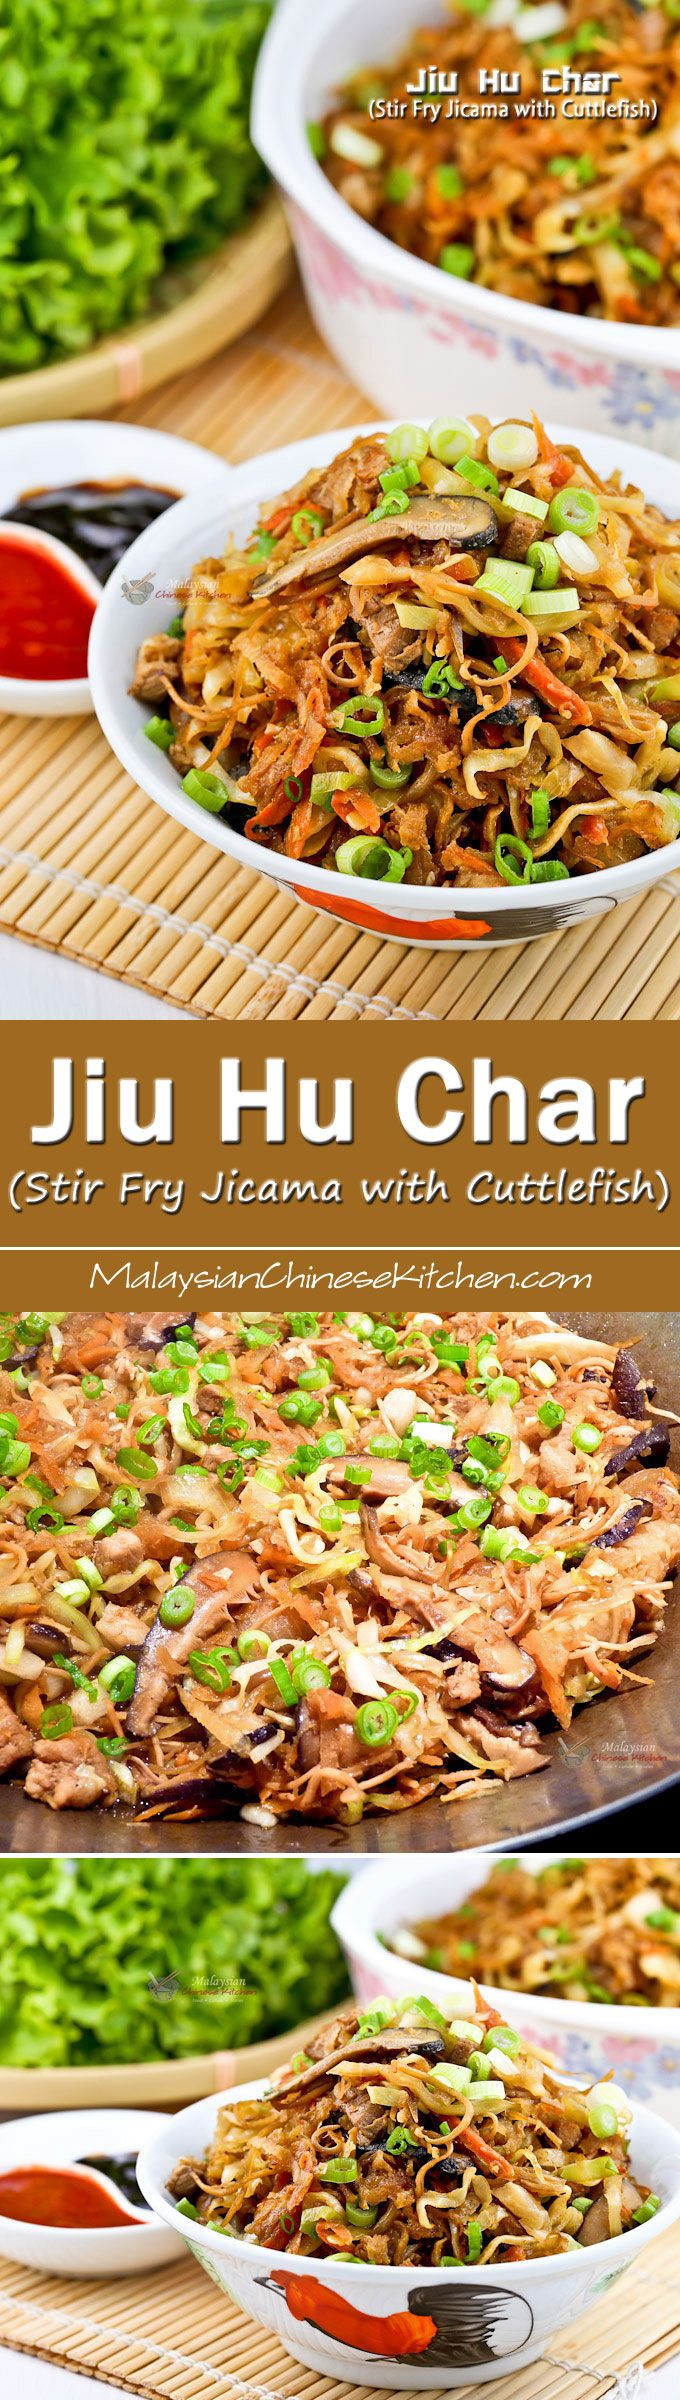 95 best malaysian chinese kitchen images on pinterest asian food jiu hu char stir fry jicama with cuttlefish is a popular nyonya side dish malaysian recipesmalaysian foodthai forumfinder Gallery